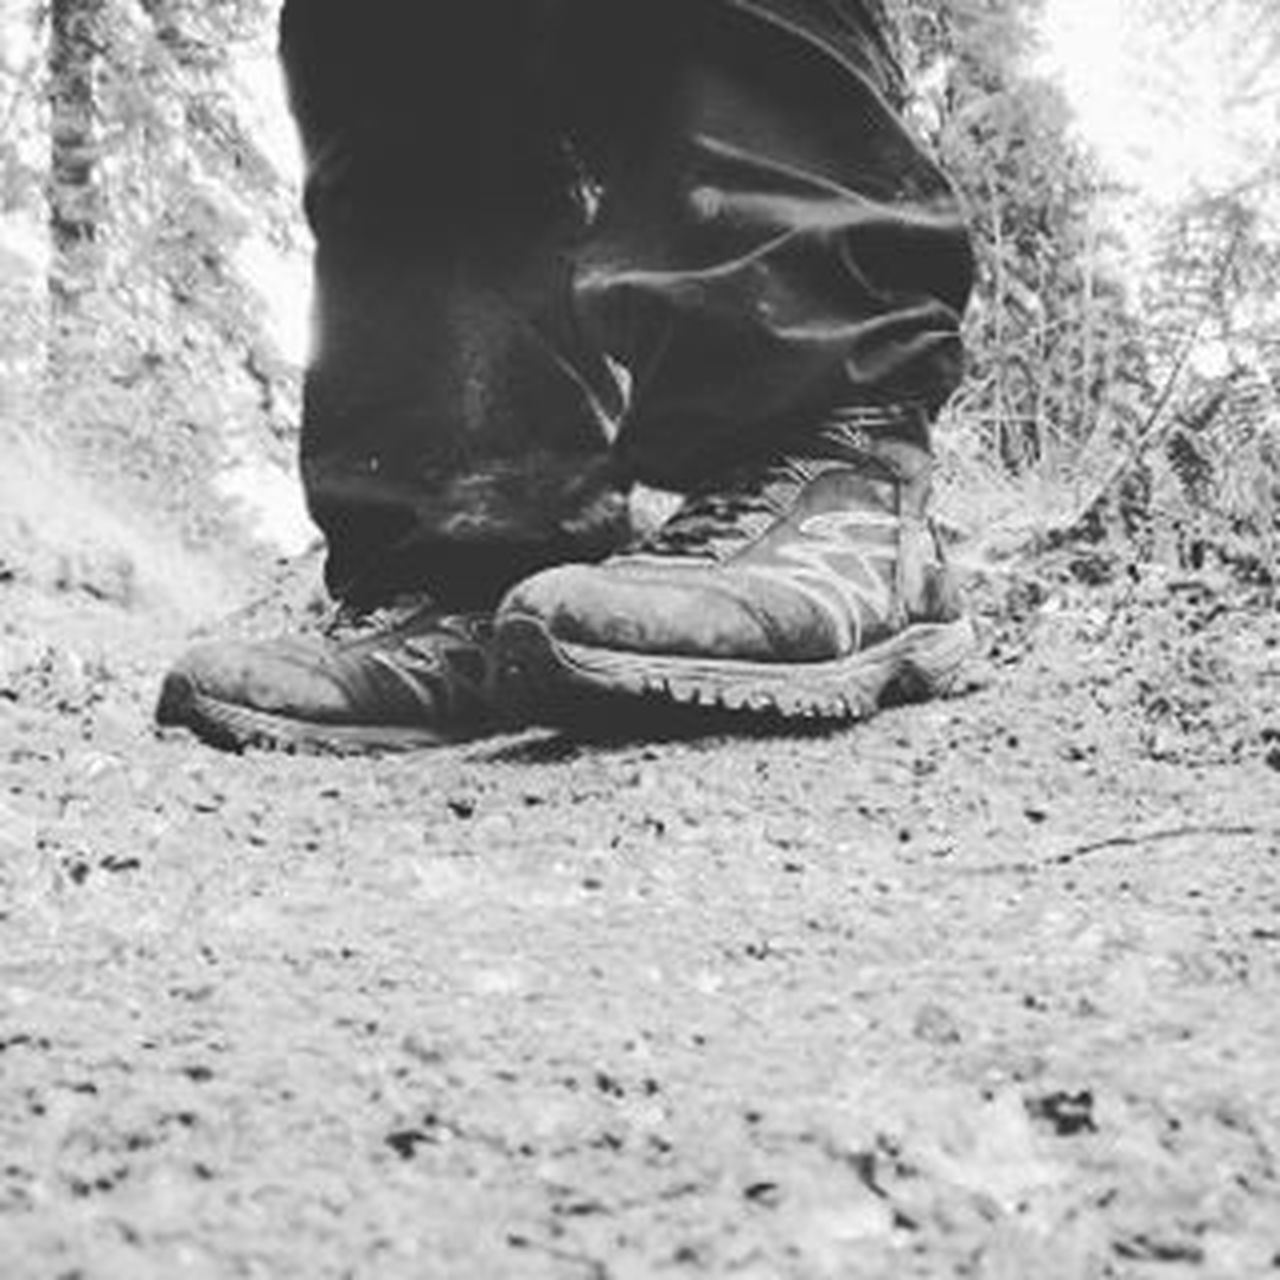 These Boots are not made for walking... 👢 Romania Padiș Hiking Hikingadventures Hikingboots Travel Instatravel Nature Naturelovers Mud Longweekend Mik Blackandwhite Blackandwhitephotography